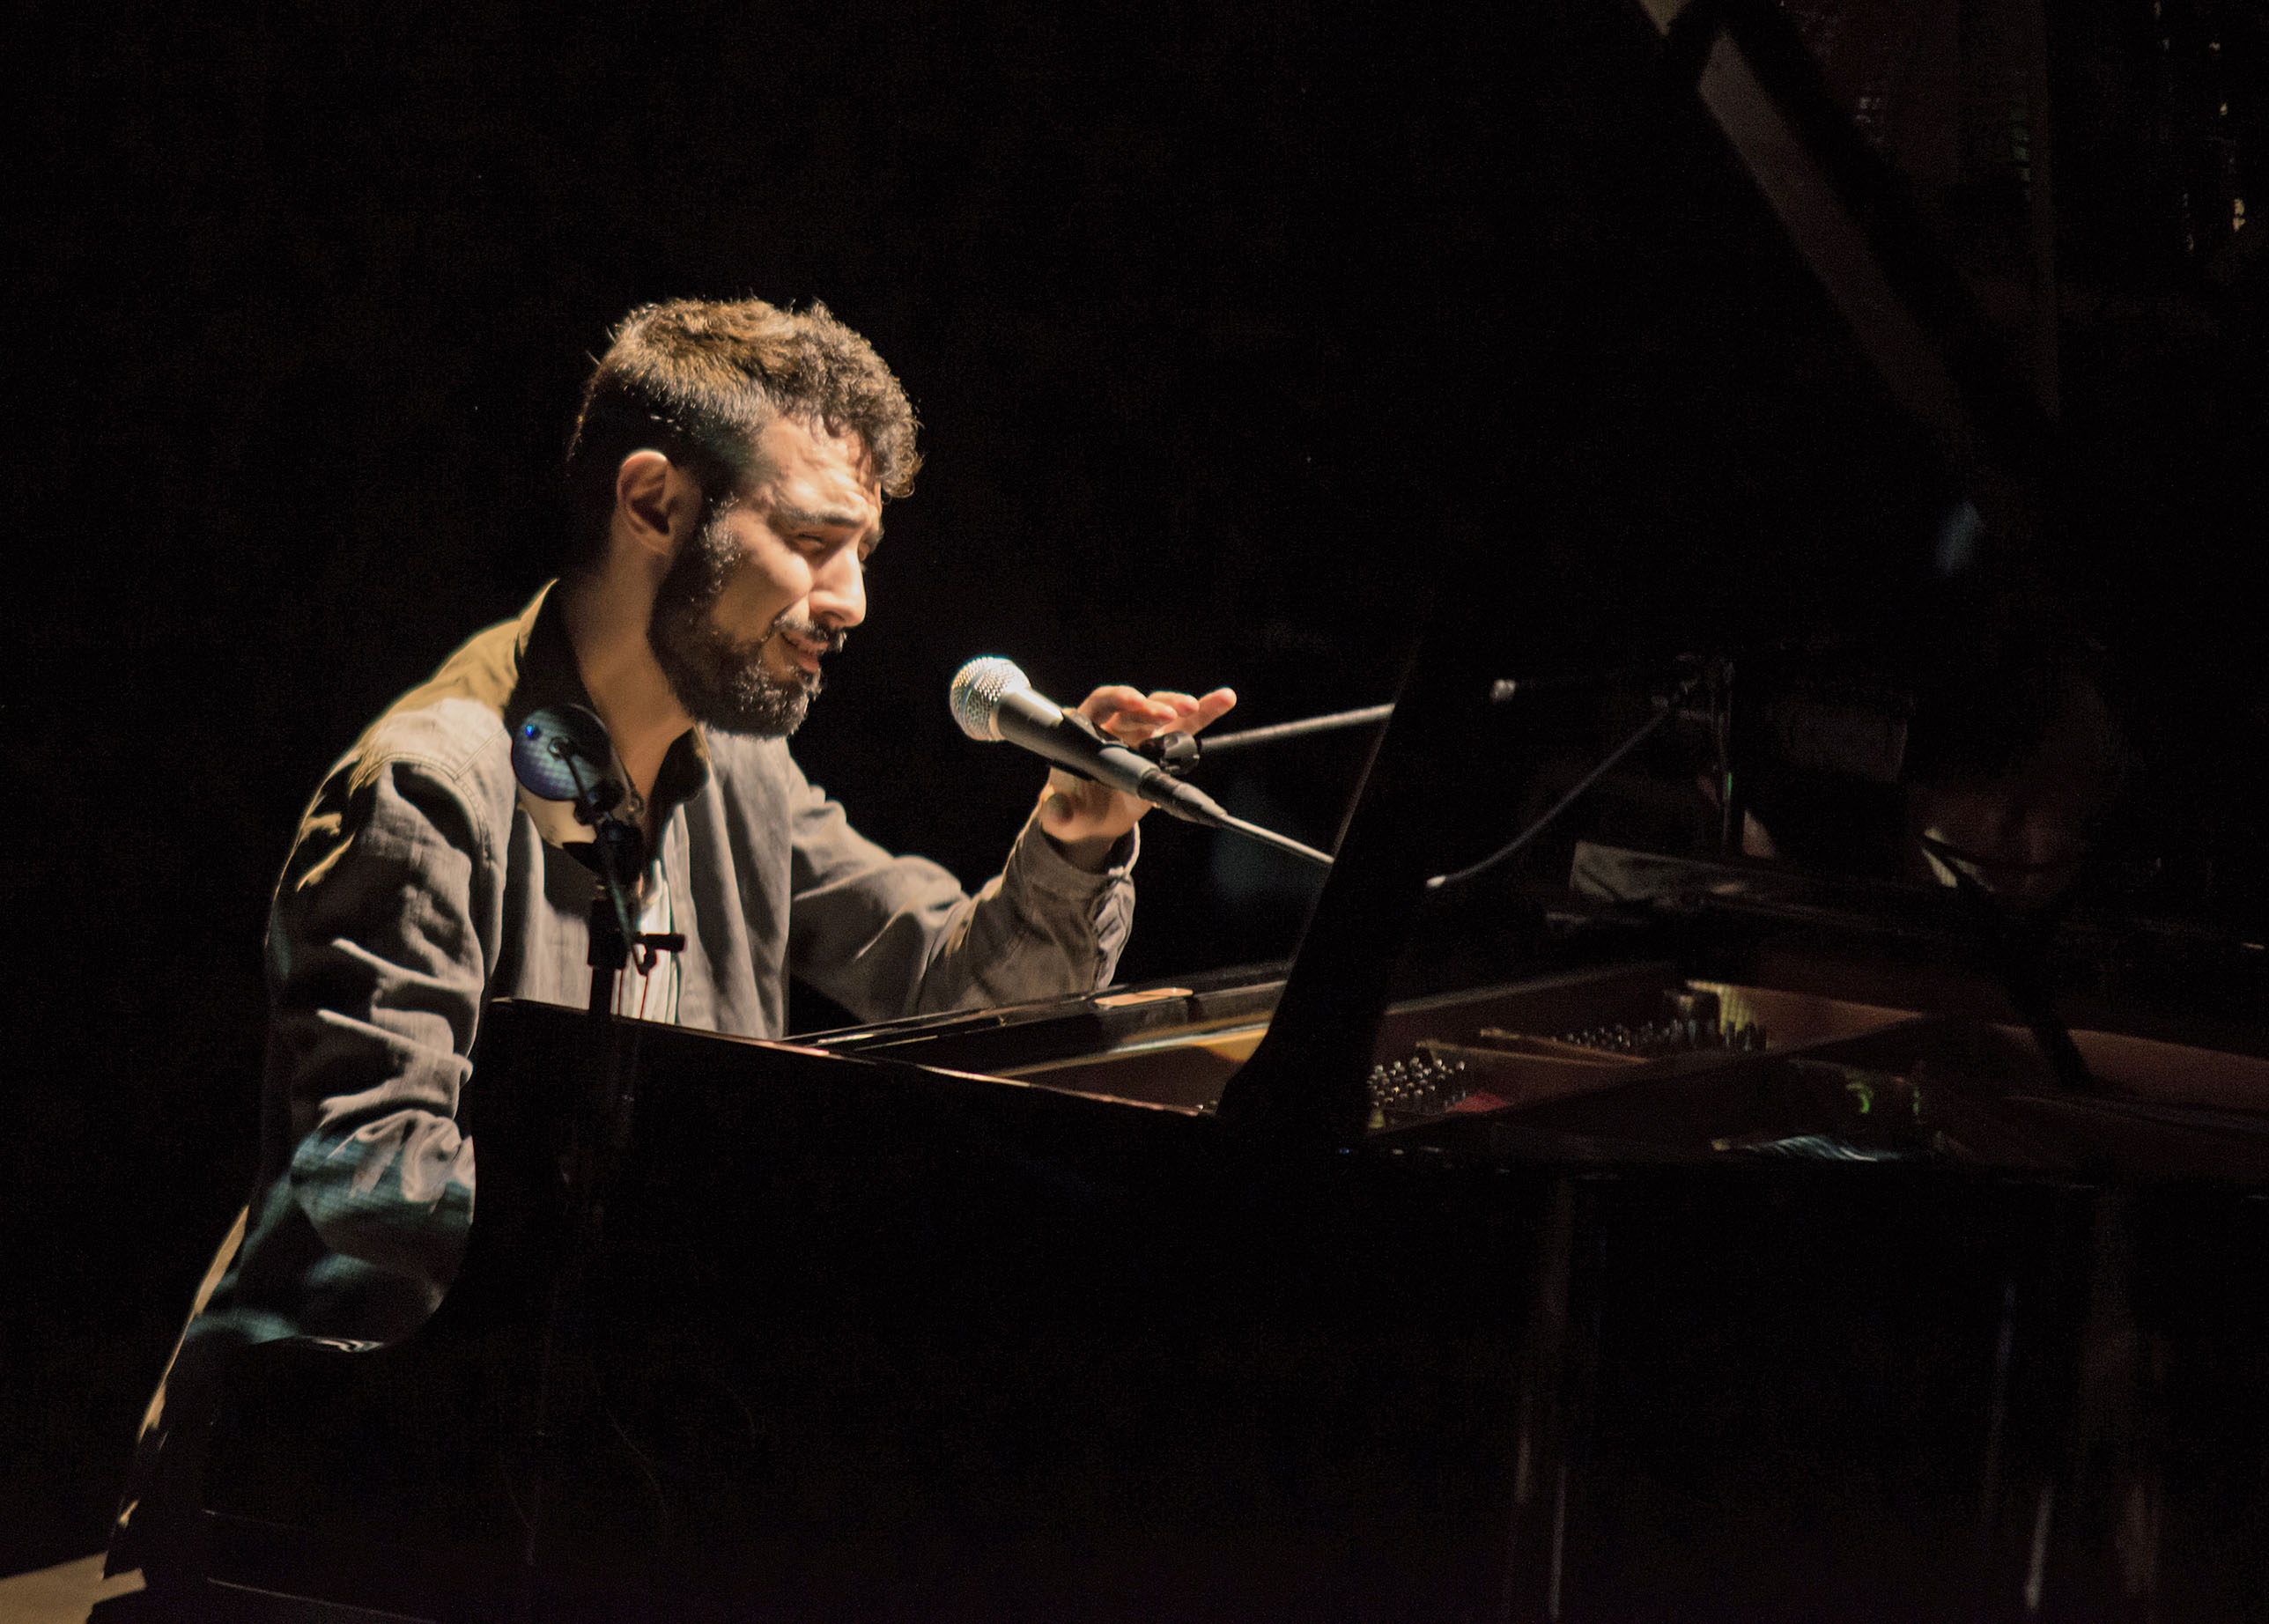 Tigran hamasyan/jan bang duo @ punkt 2013